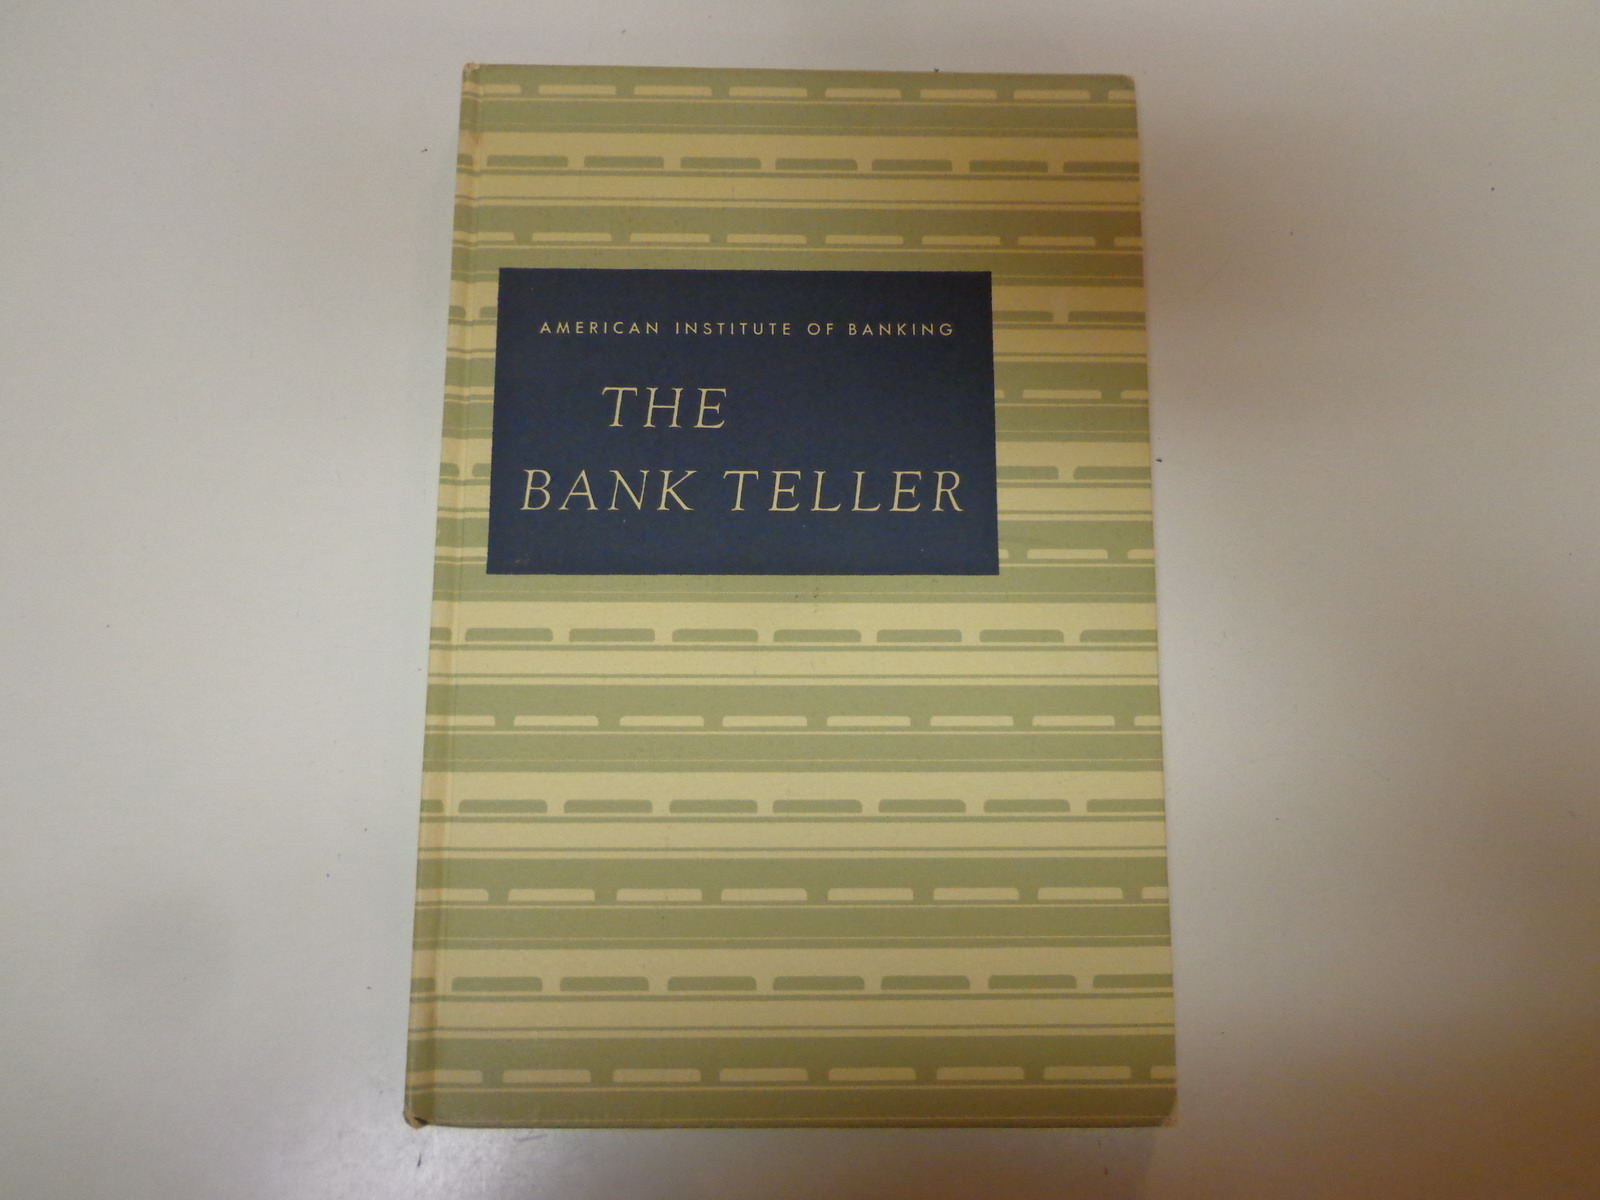 the bank teller 1958 american institute of banking course